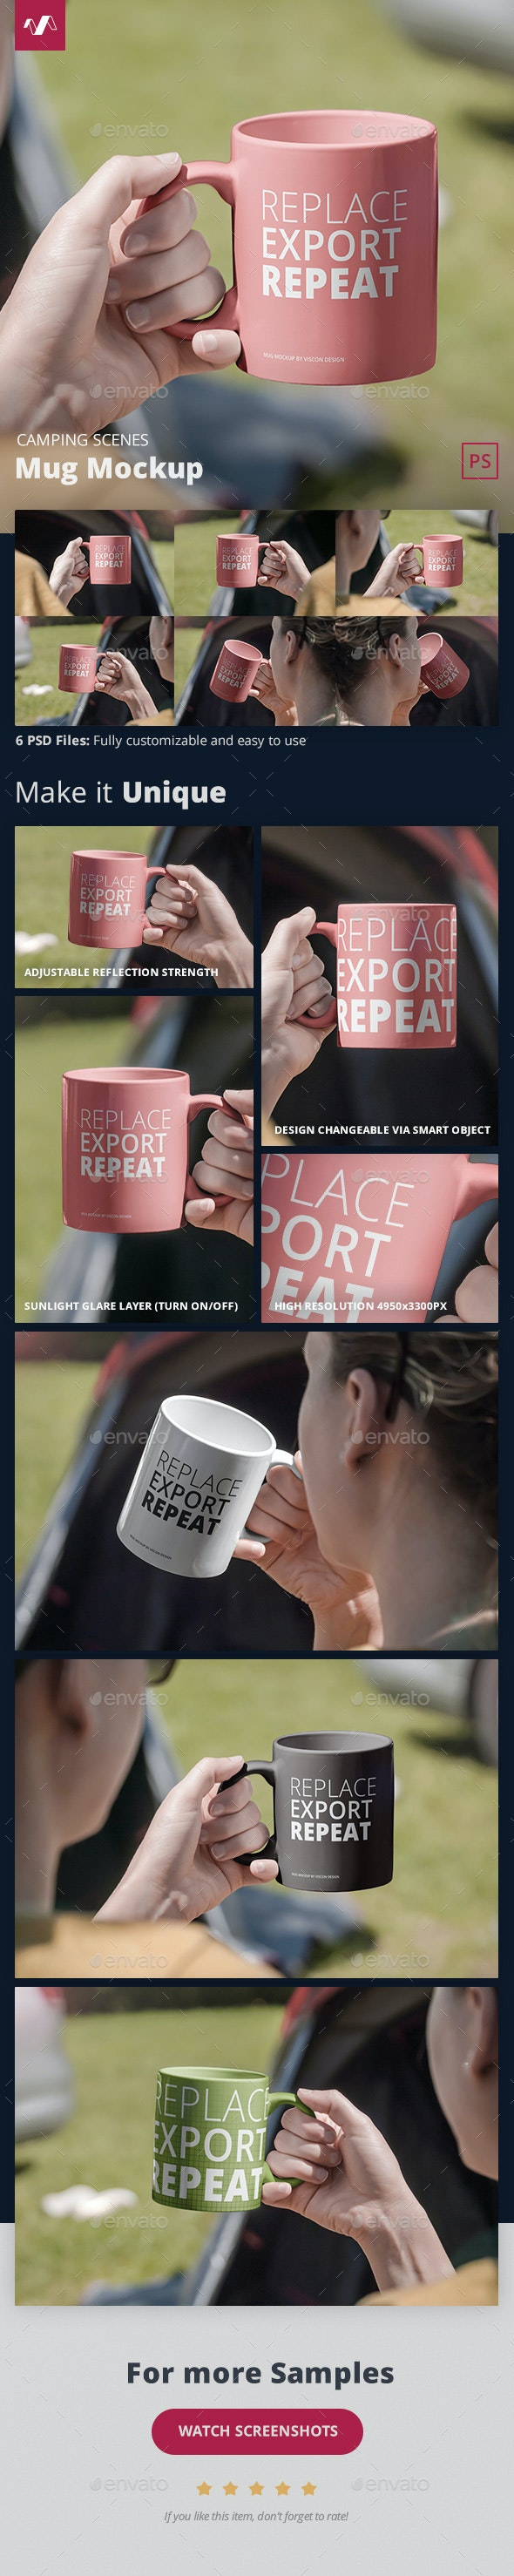 Mug Mockup Camping Scenes - Food and Drink Packaging